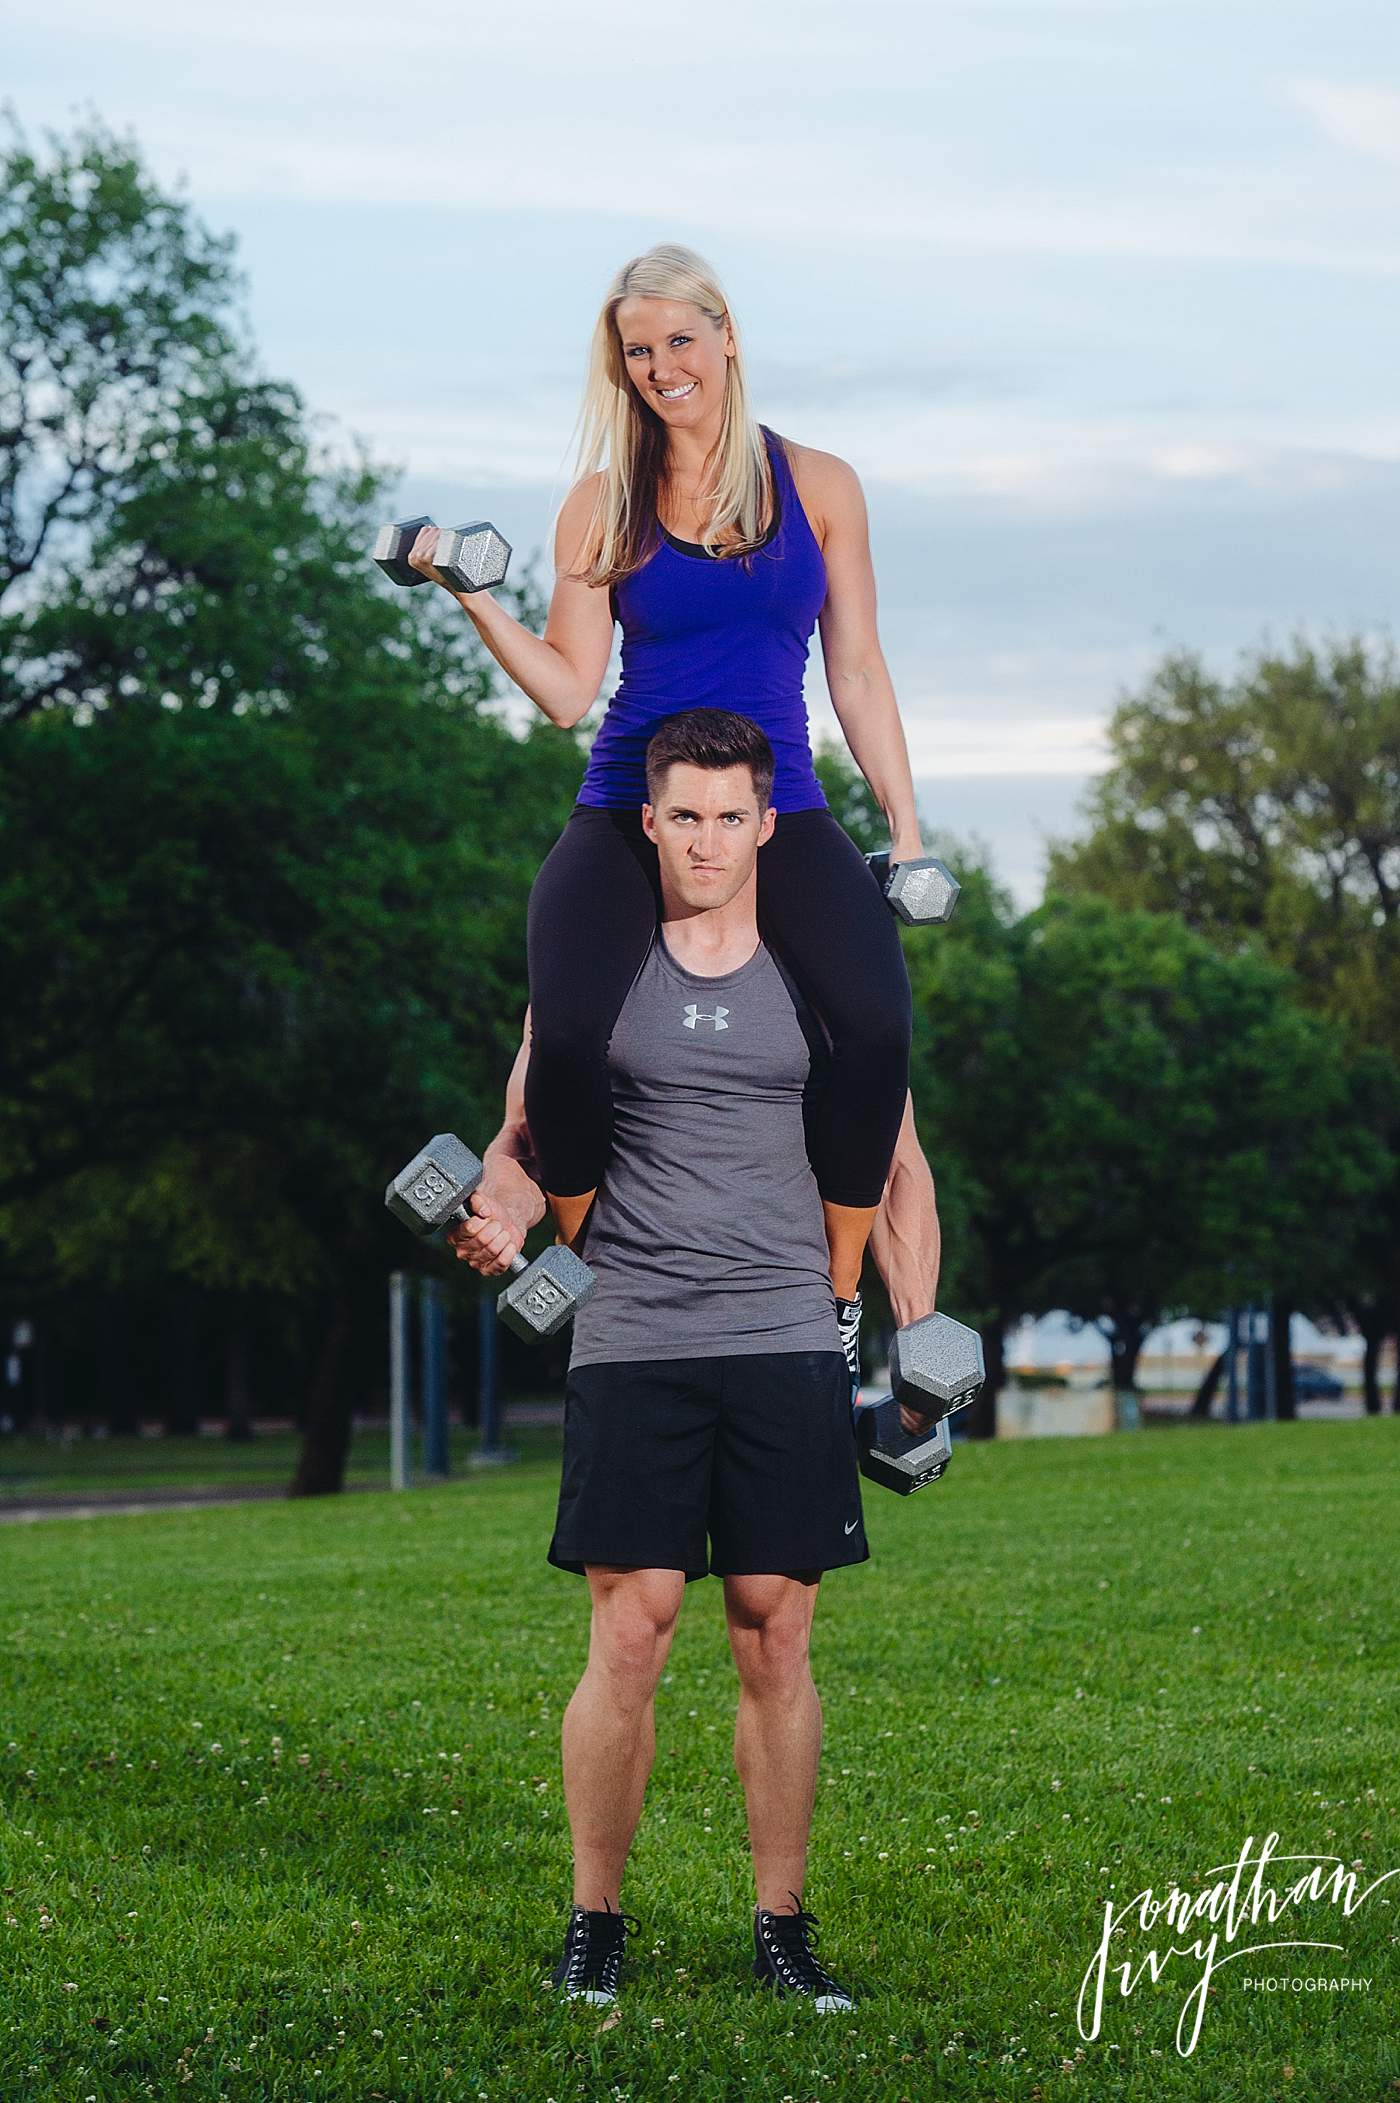 Fitspo Engagement Photos